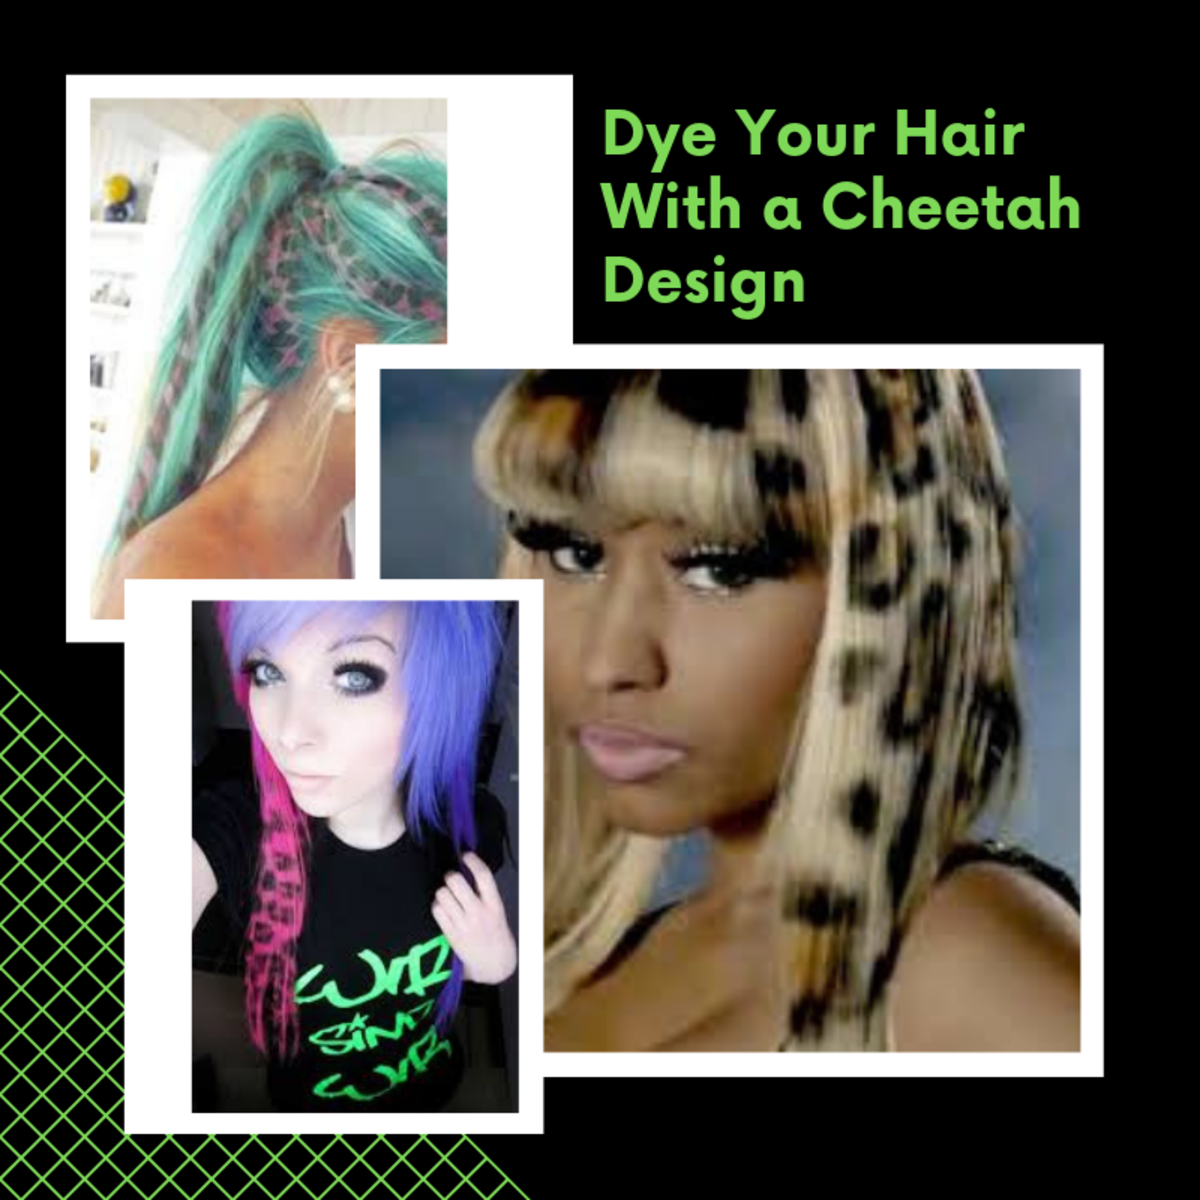 how-to-dye-your-hair-with-a-leopard-print-design